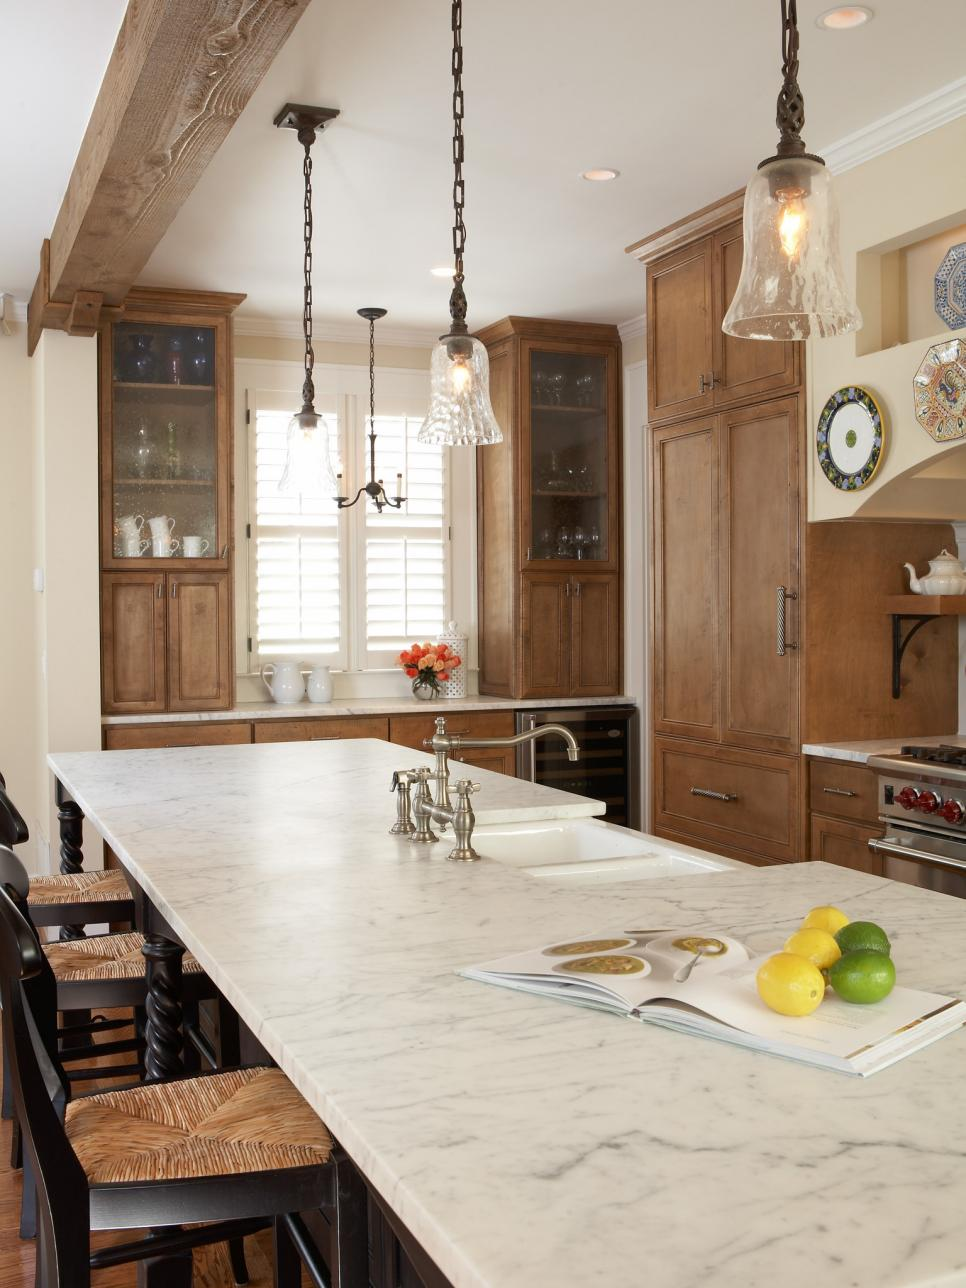 rustic kitchen cabinet new york city hotels with kitchens 10 types of cabinets to pine for view in gallery